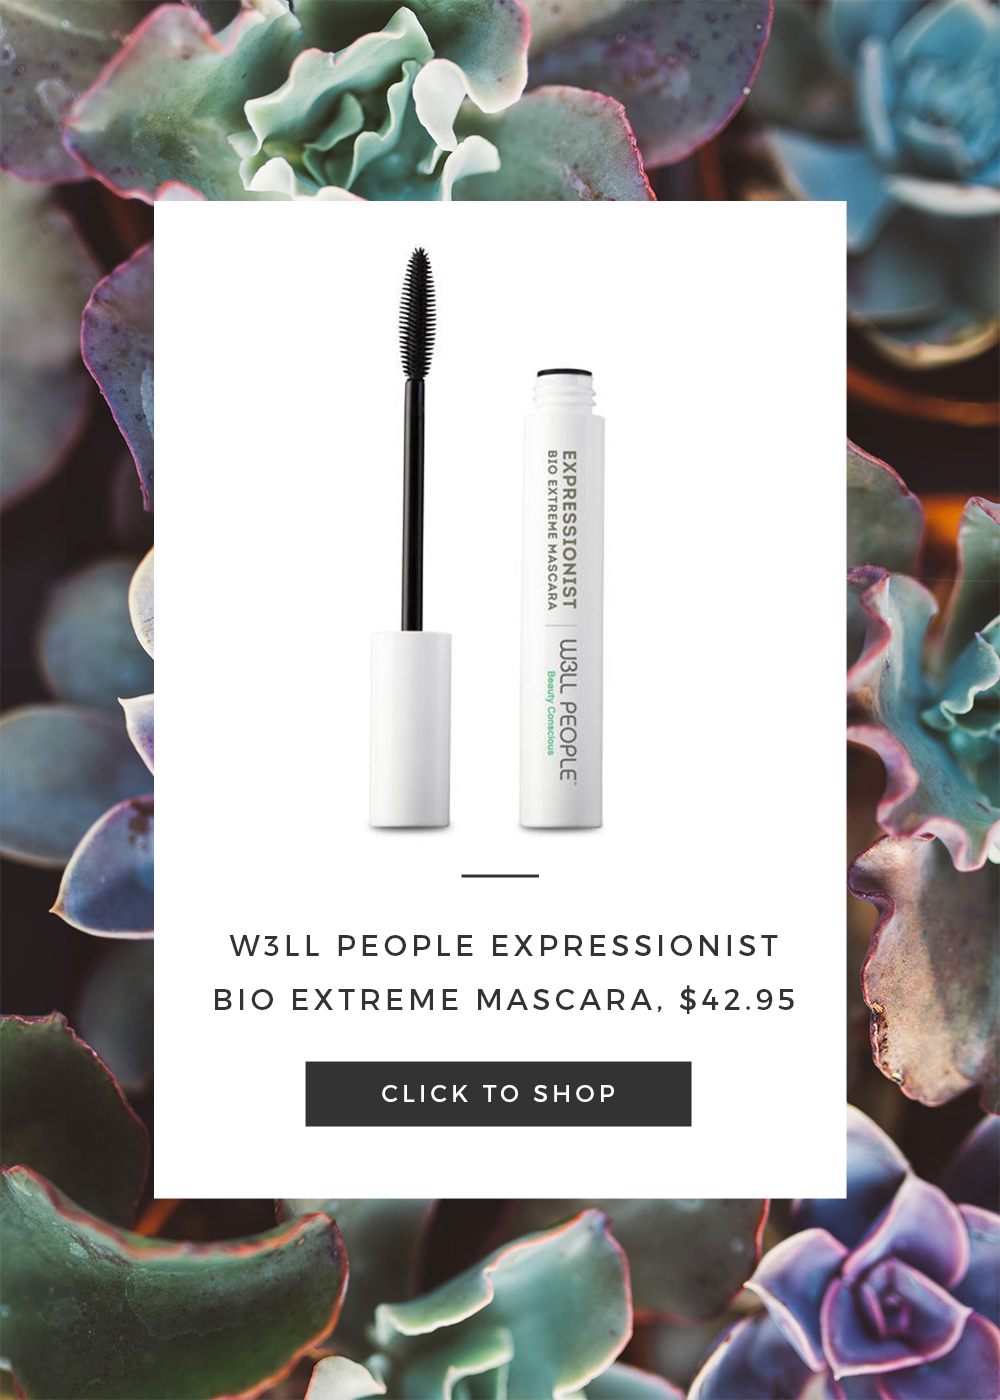 W3LL PEOPLE Expressionist Bio Extreme Mascara